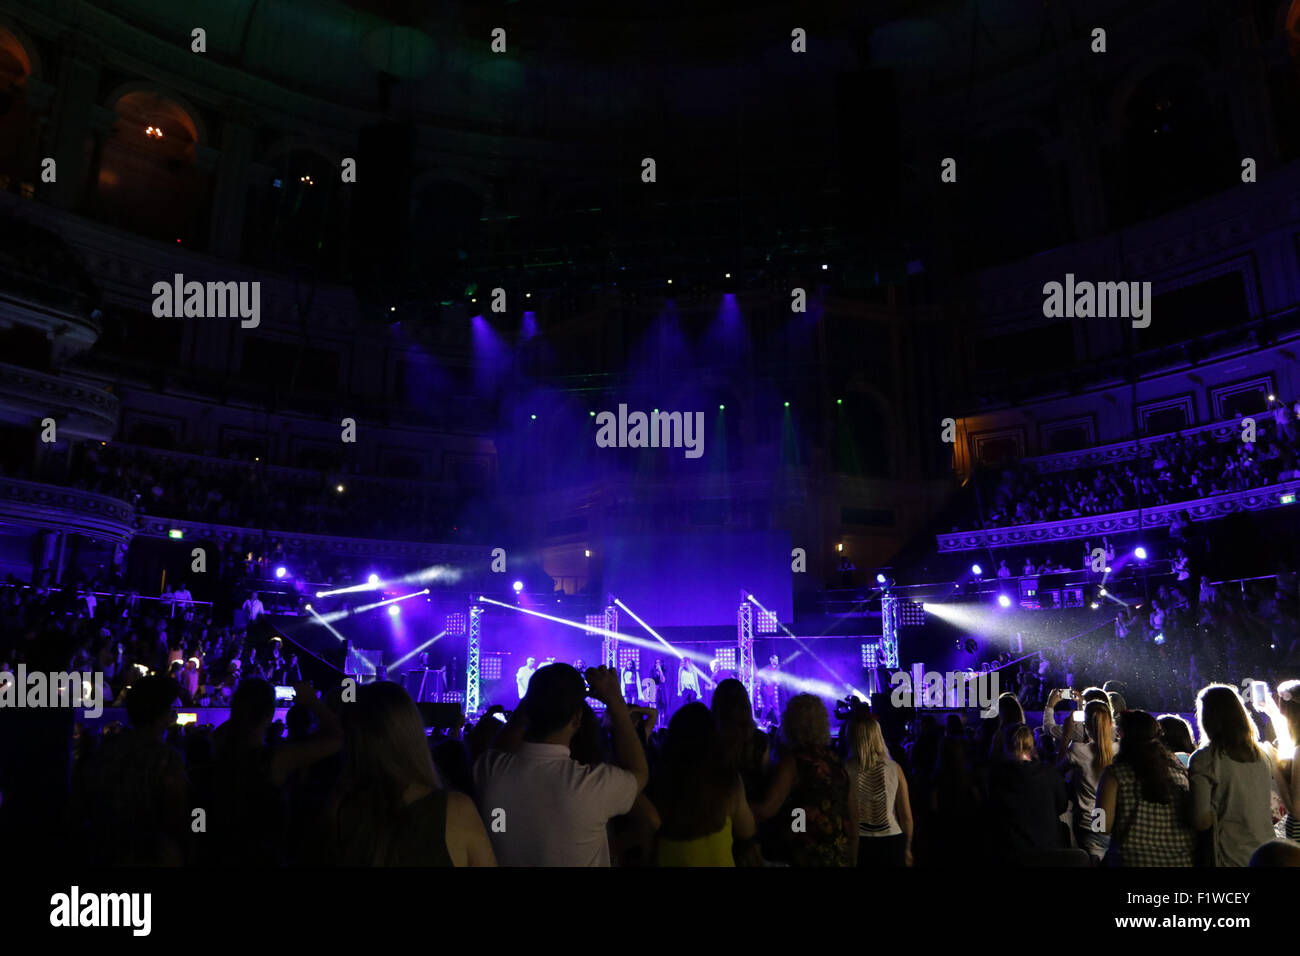 London, UK, 7th June 2015: Atmosphere at the Frankie & Benney's Rays of Sunshine Concert at The Royal Albert Hall Stock Photo